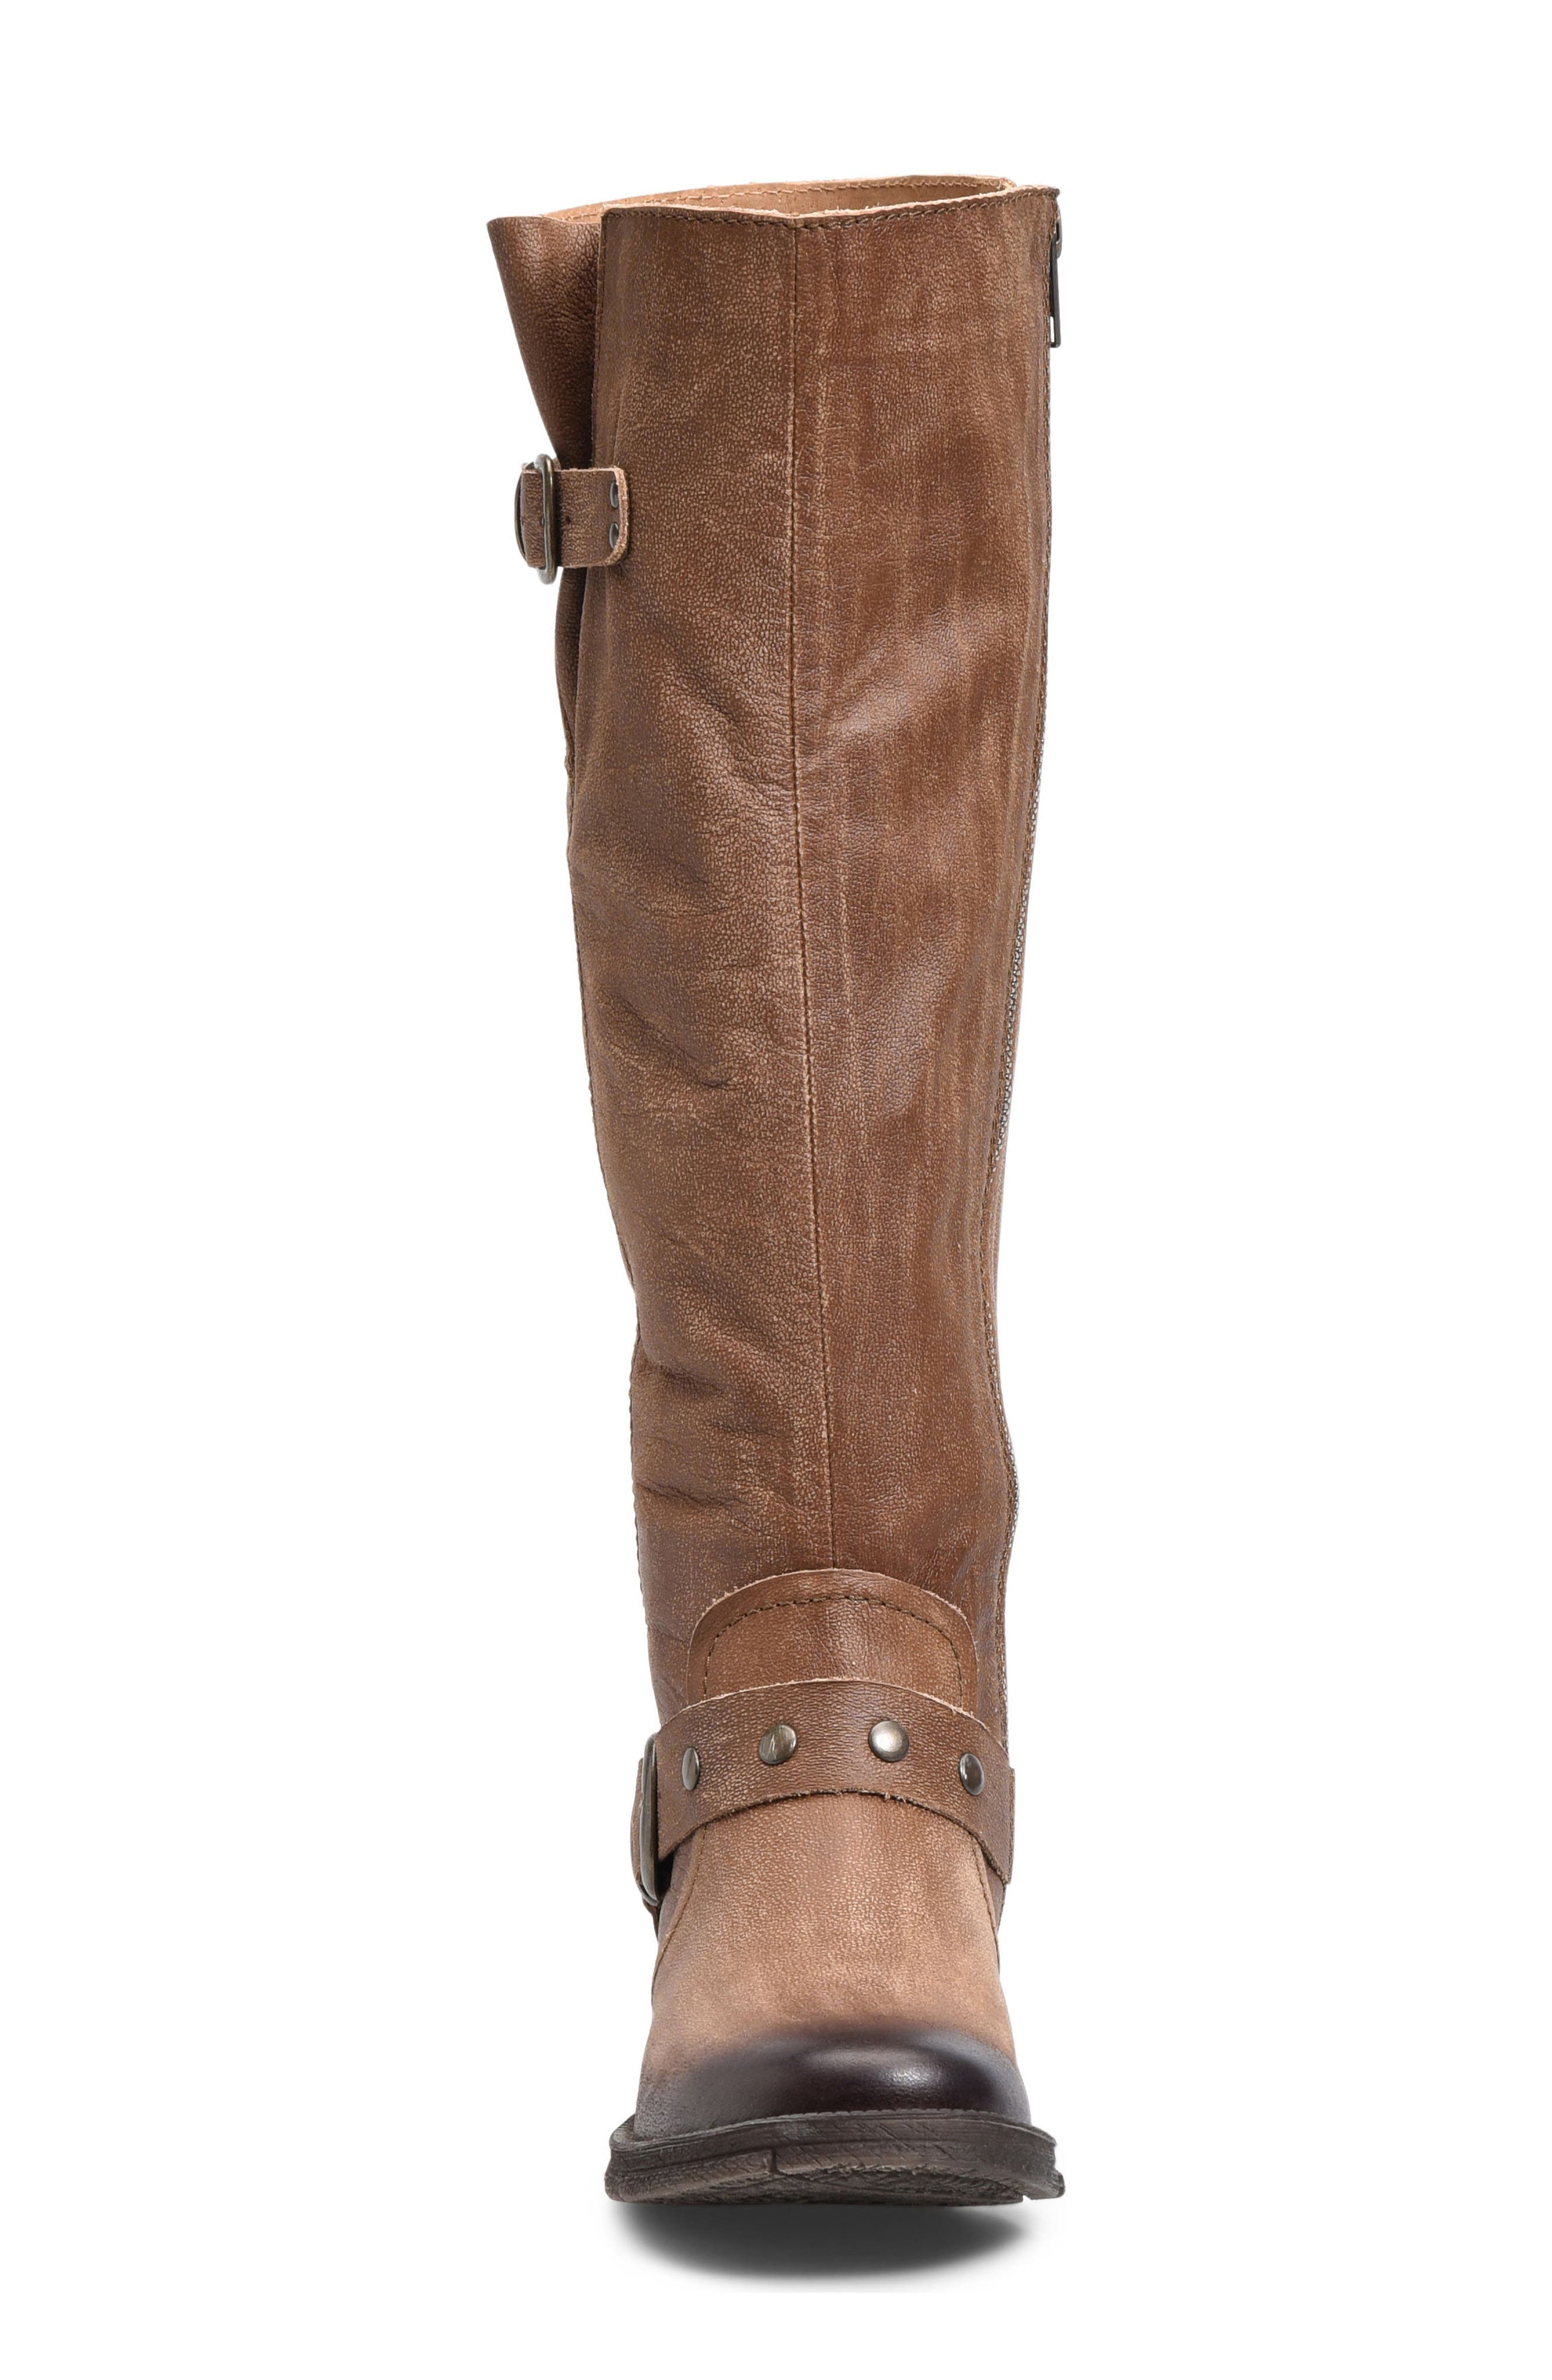 Ashland Knee High Boot,                             Alternate thumbnail 4, color,                             Brown Leather